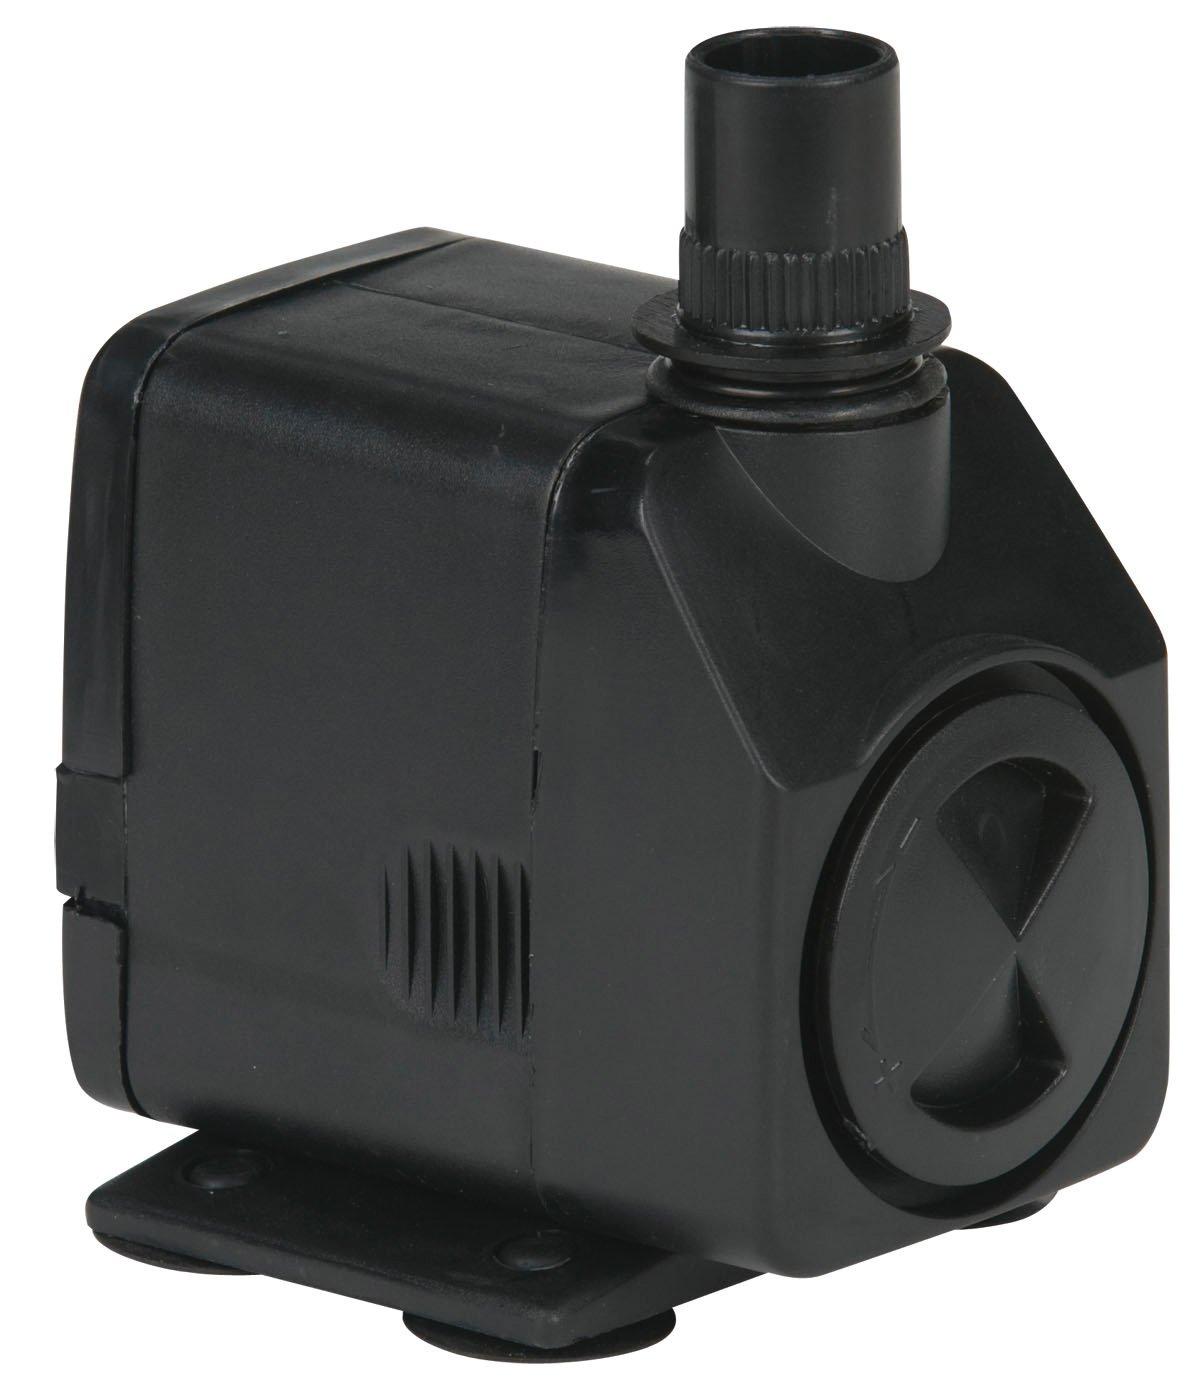 Little Giant 566716 130 GPH Submersible Magnetic Drive Statuary Fountain Pump, 11 Watts by LITTLE GIANT